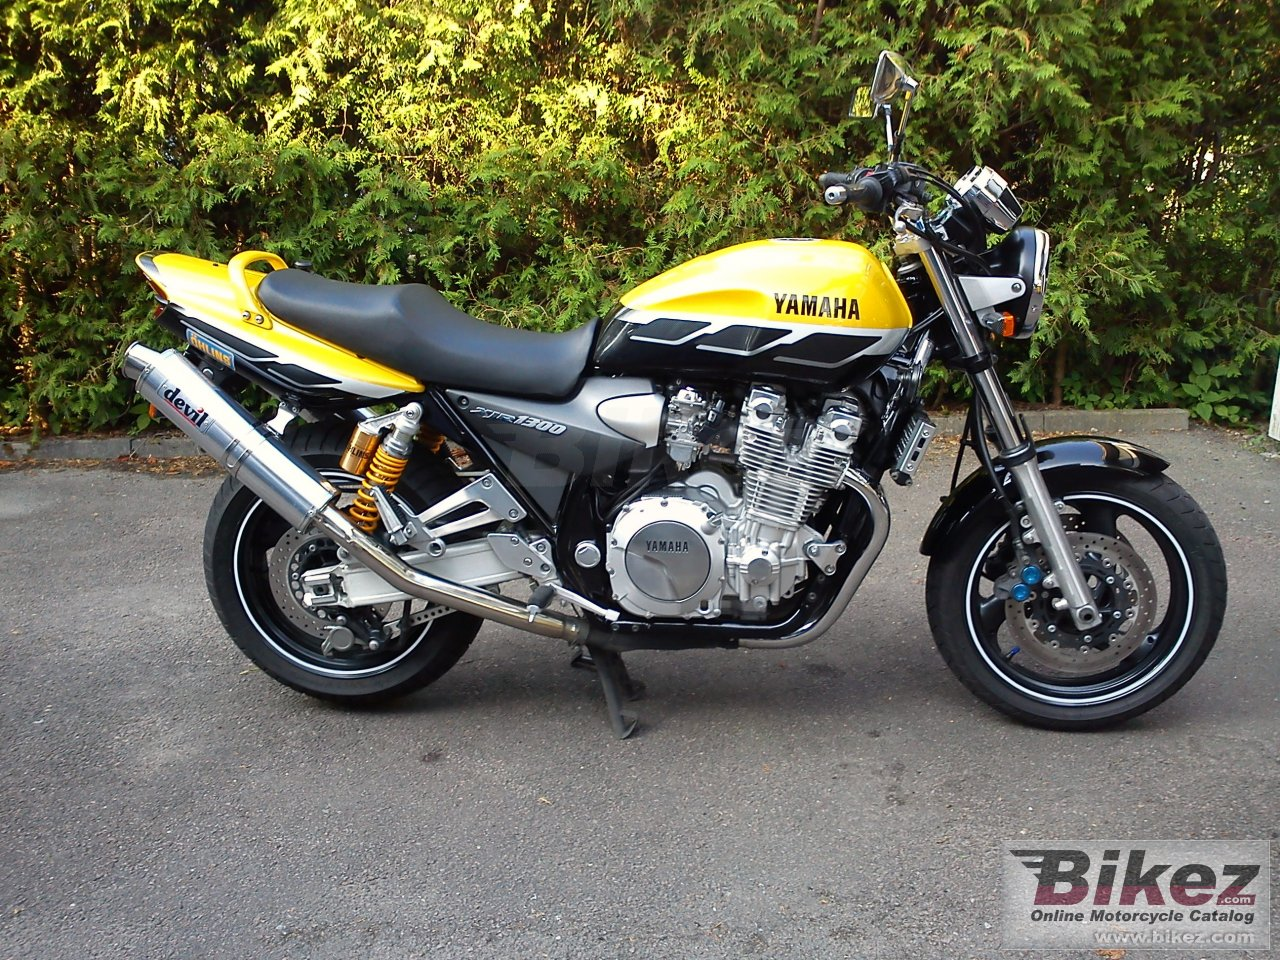 Big  xjr 1300 sp picture and wallpaper from Bikez.com